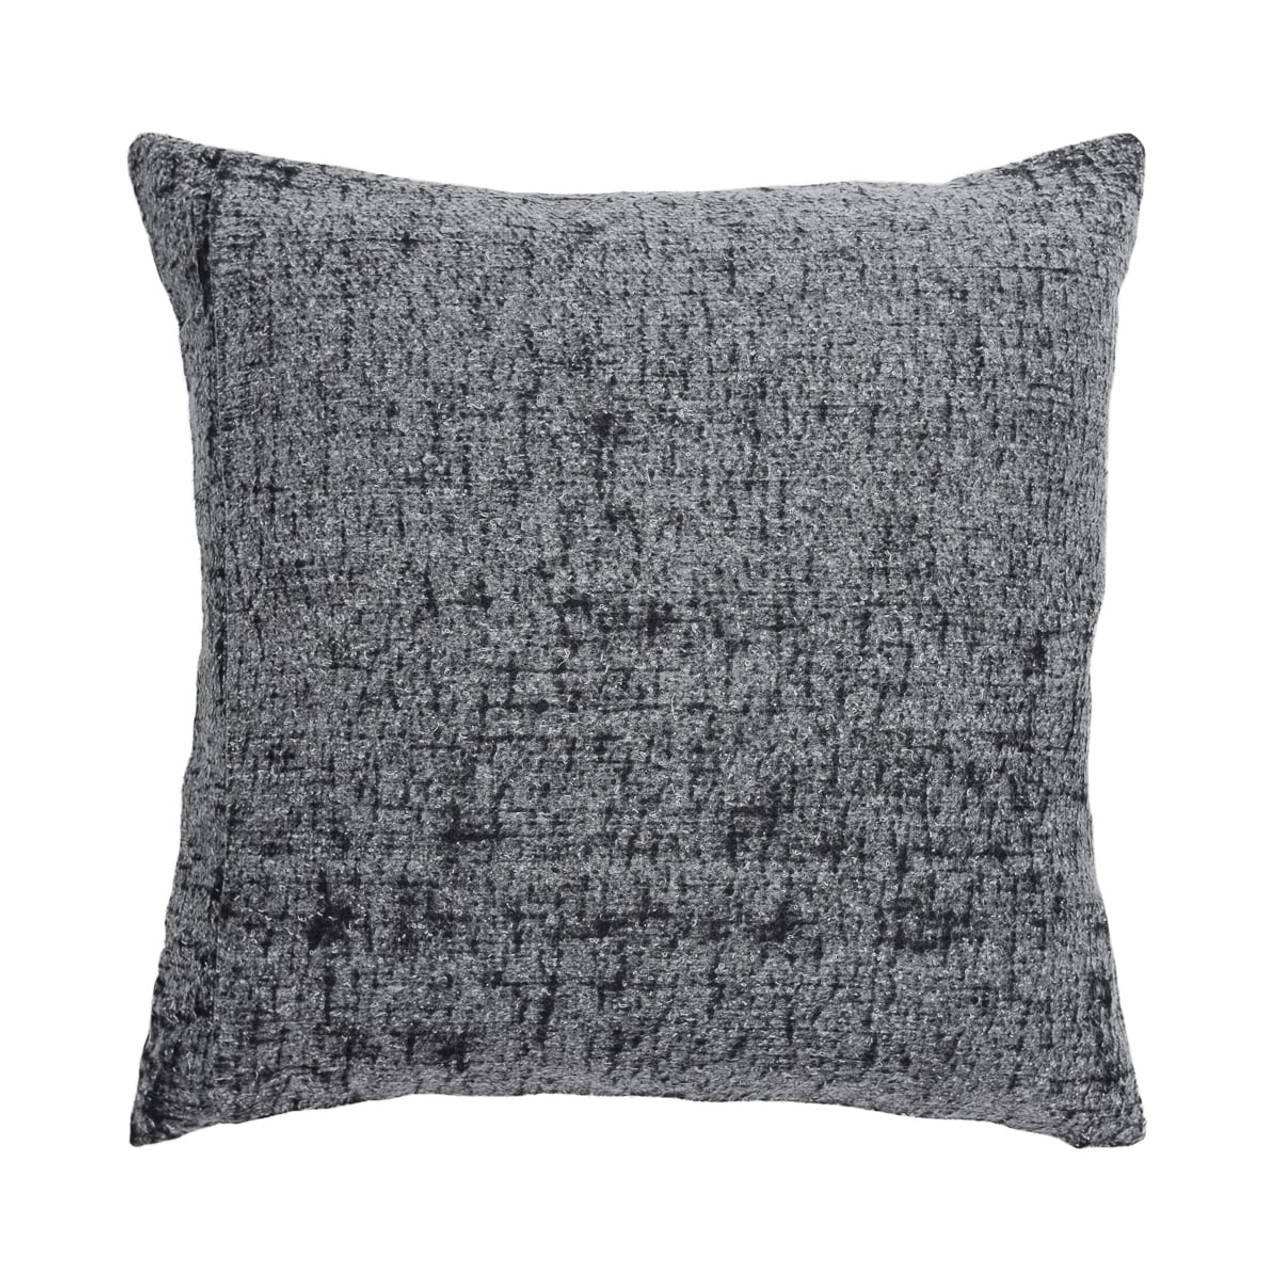 Luxury Decorative Pillow For Sofa Grey Mist 01 Cate Brown